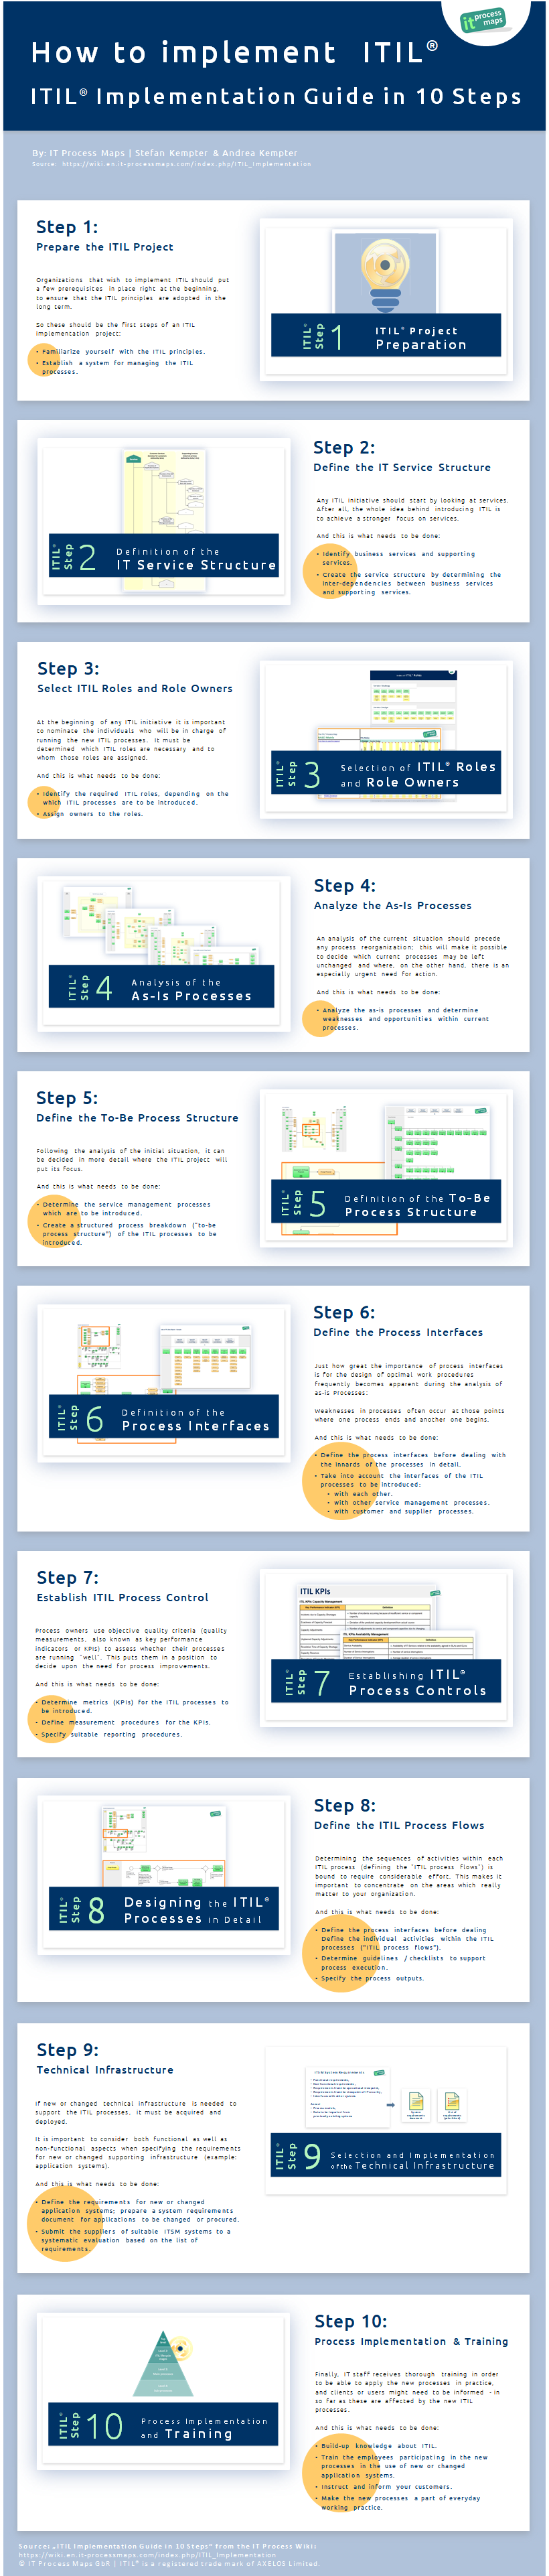 ITIL Implementation/ Infographic | IT Process Wiki